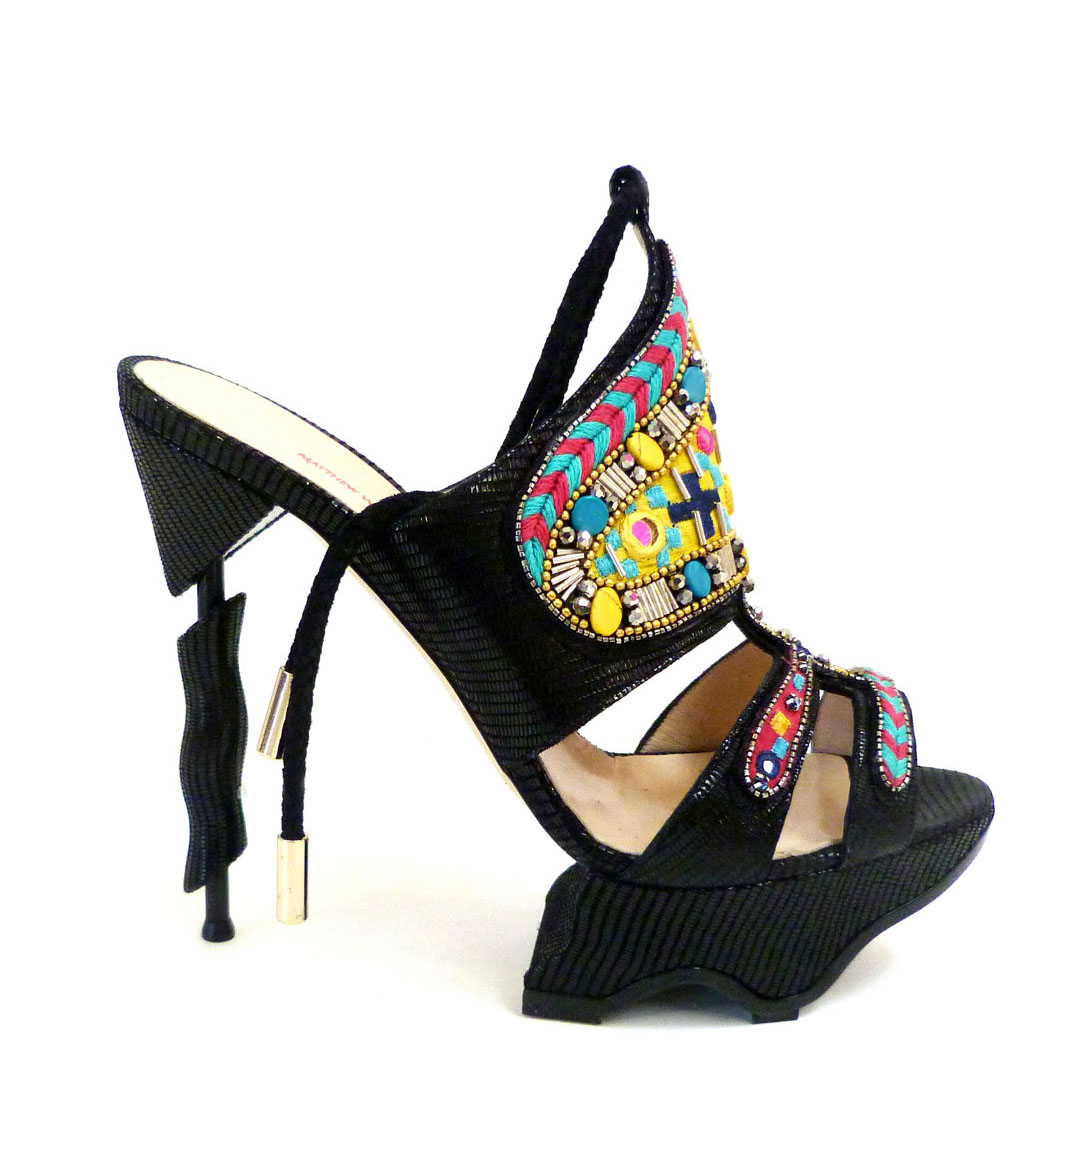 Matthew Williamson latest shoes 2013